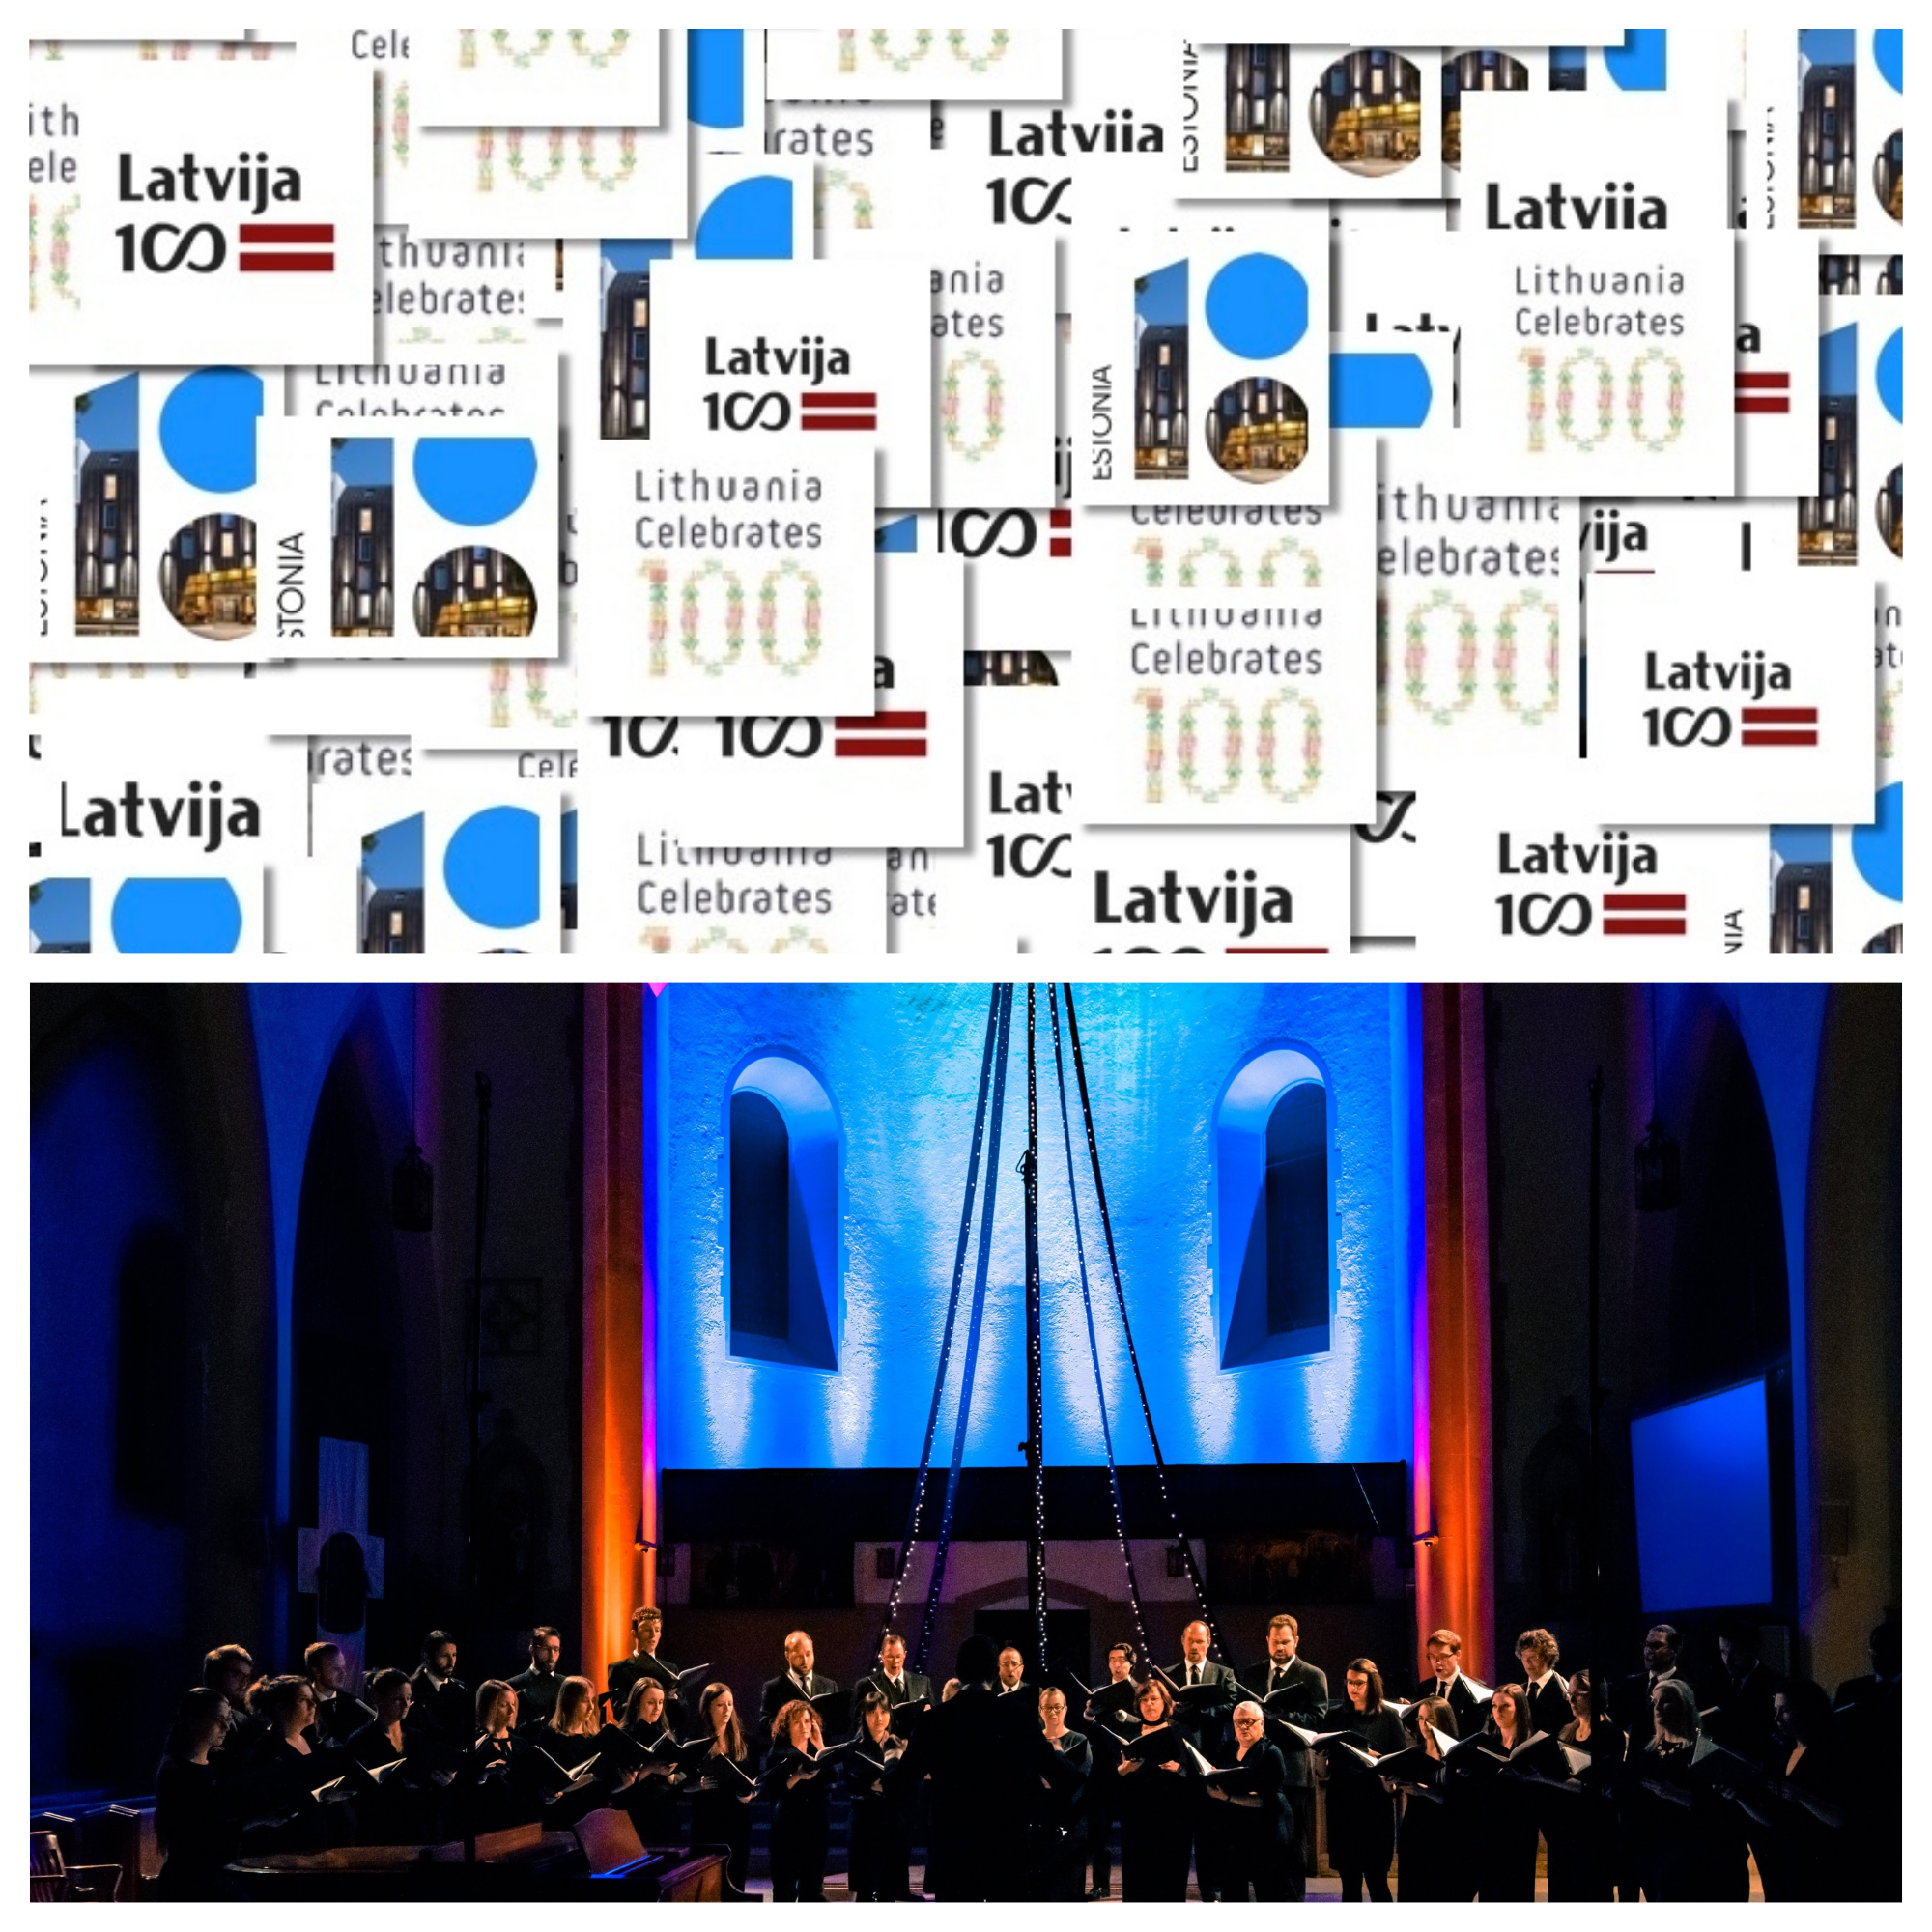 "Capital Chamber Choir, in collaboration with the Latvian, Estonian, and Lithuanian Embassies to Canada, present:""A Baltic Celebration"" - Tuesday, October 23, 2018 - 7:00 pmNational Gallery of Canada, Auditorium HallWe will have a dress rehearsal open to the public on: Monday, October 22 - 7:00pmNational Arts Centre AtriumAdmission by donationPhoto credit: Baltic American Chamber of Commerce Handsome Zac Photography"